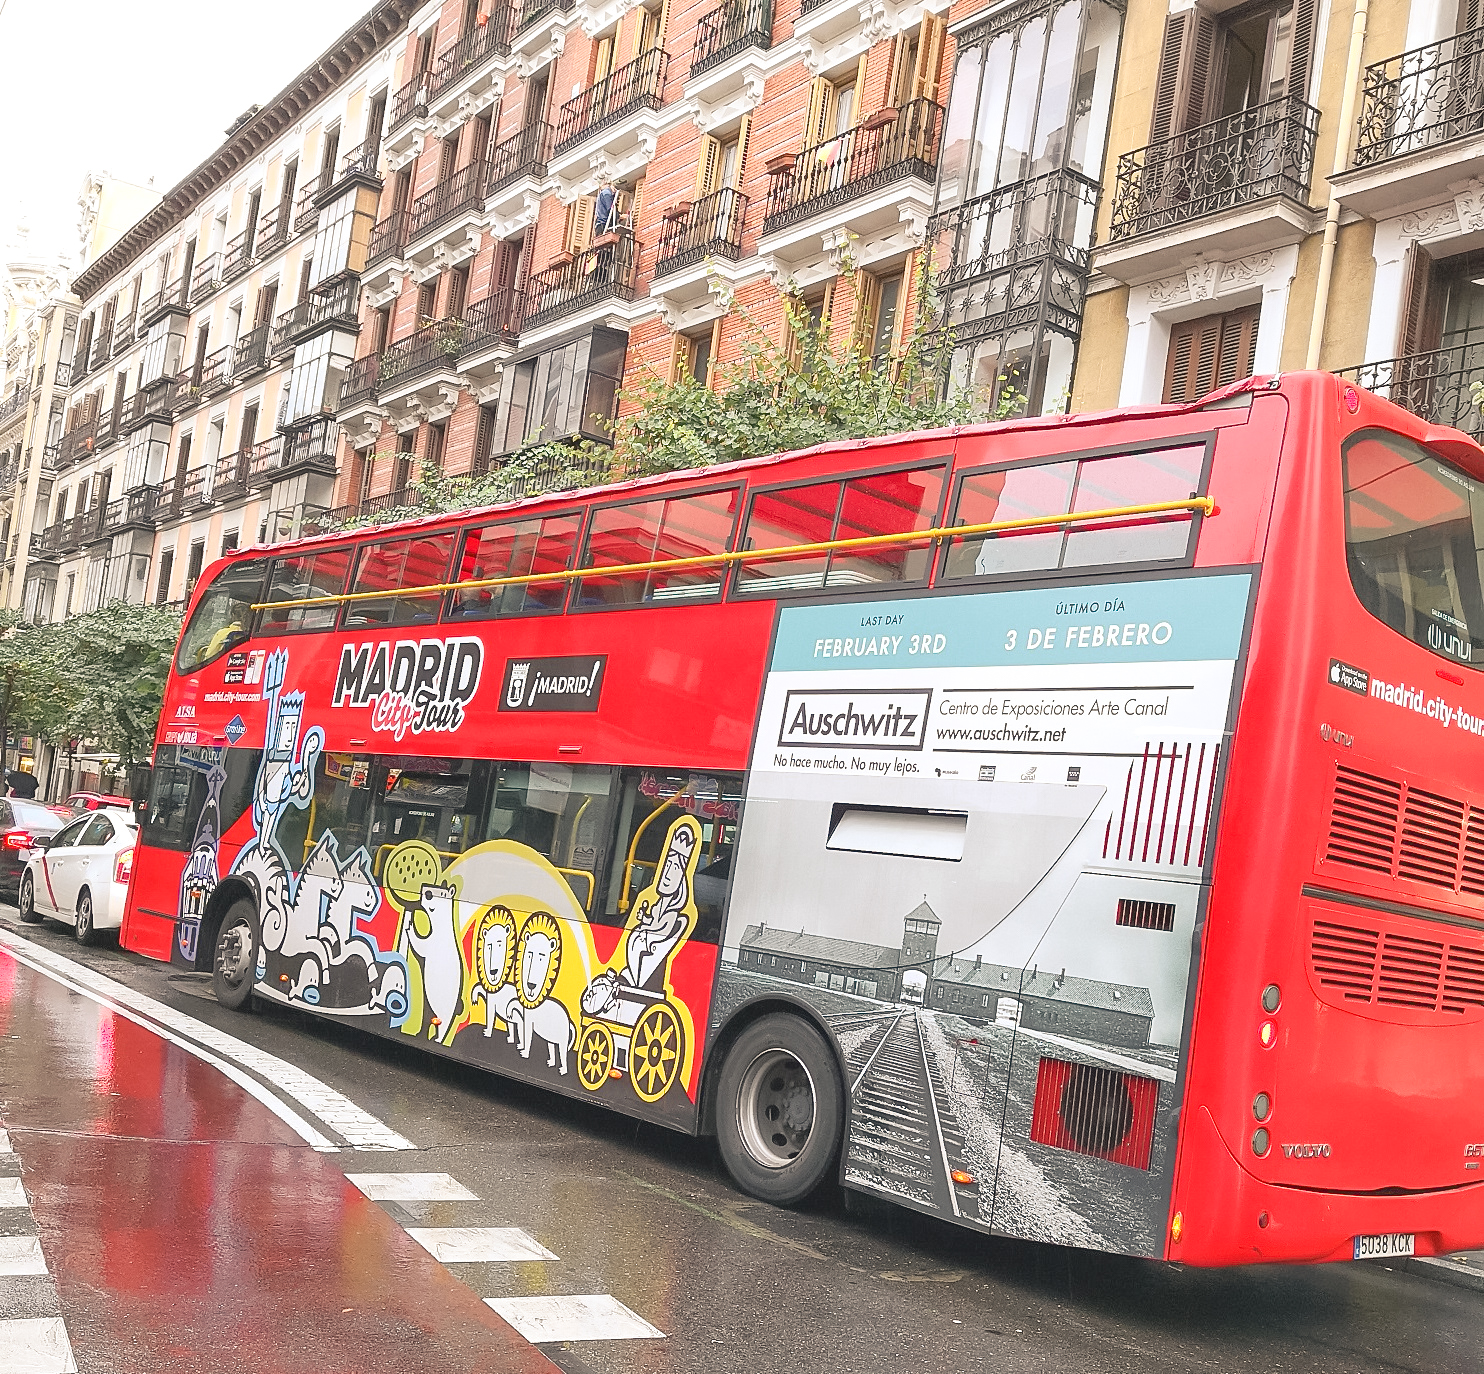 Visita madrid bus